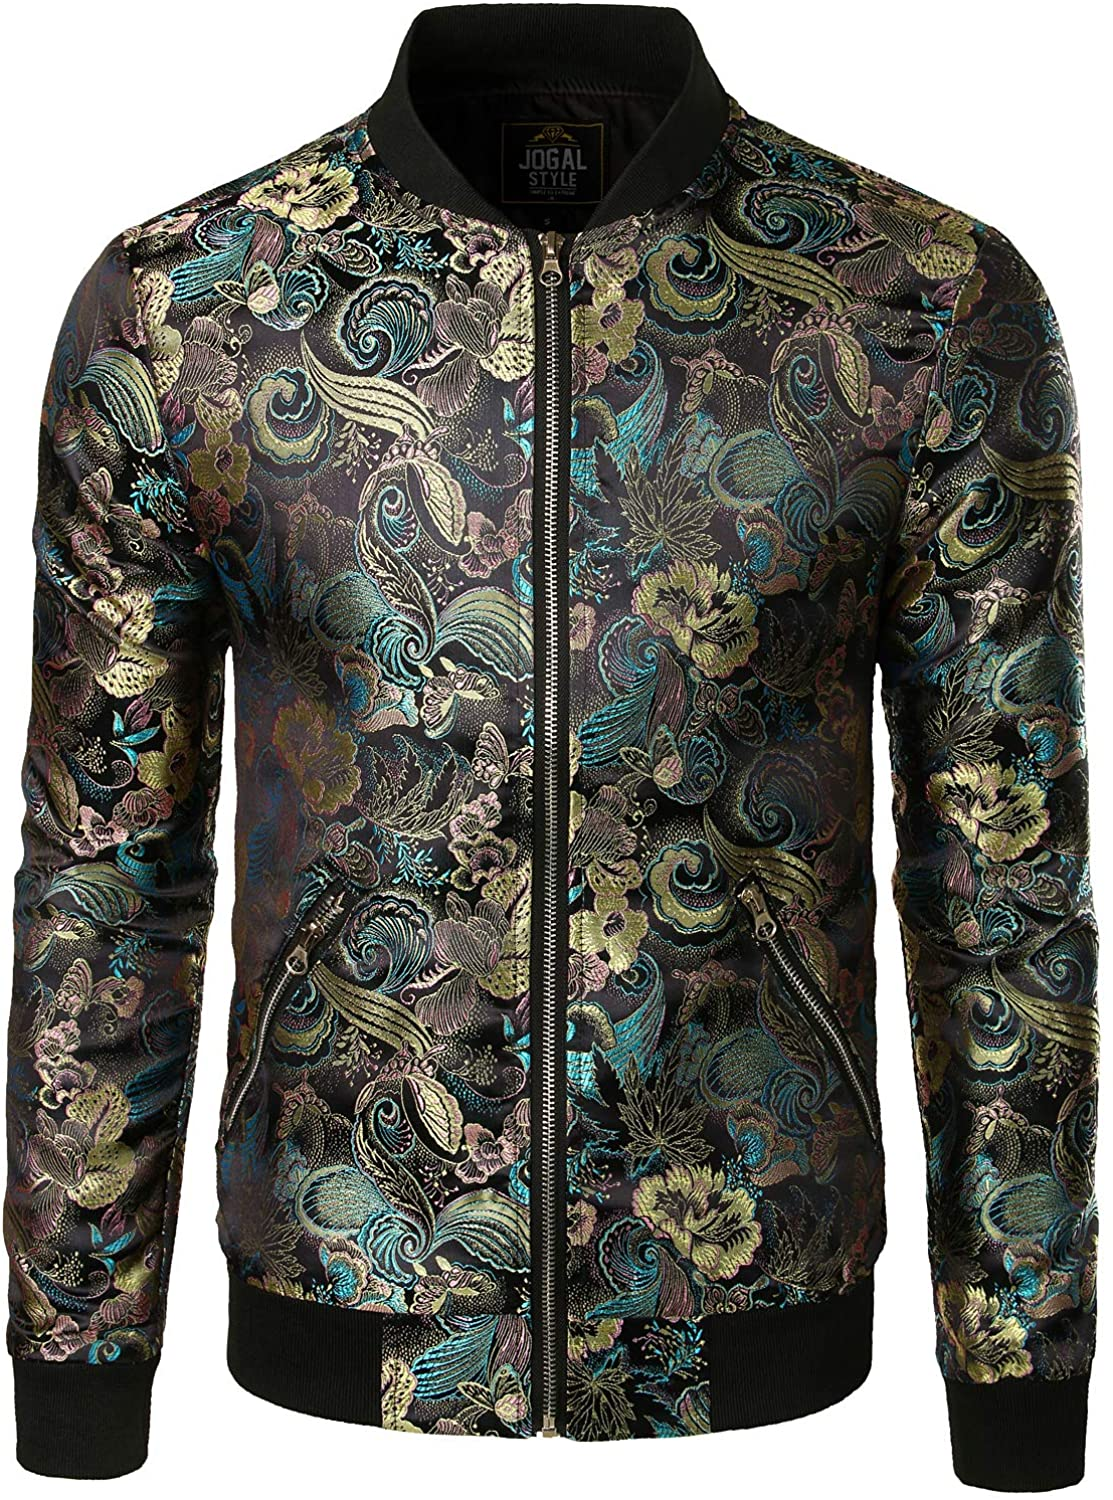 Finally resale start JOGAL Men's Luxury Paisley Super sale period limited Floral Satin Bomber Embroidered Jacke